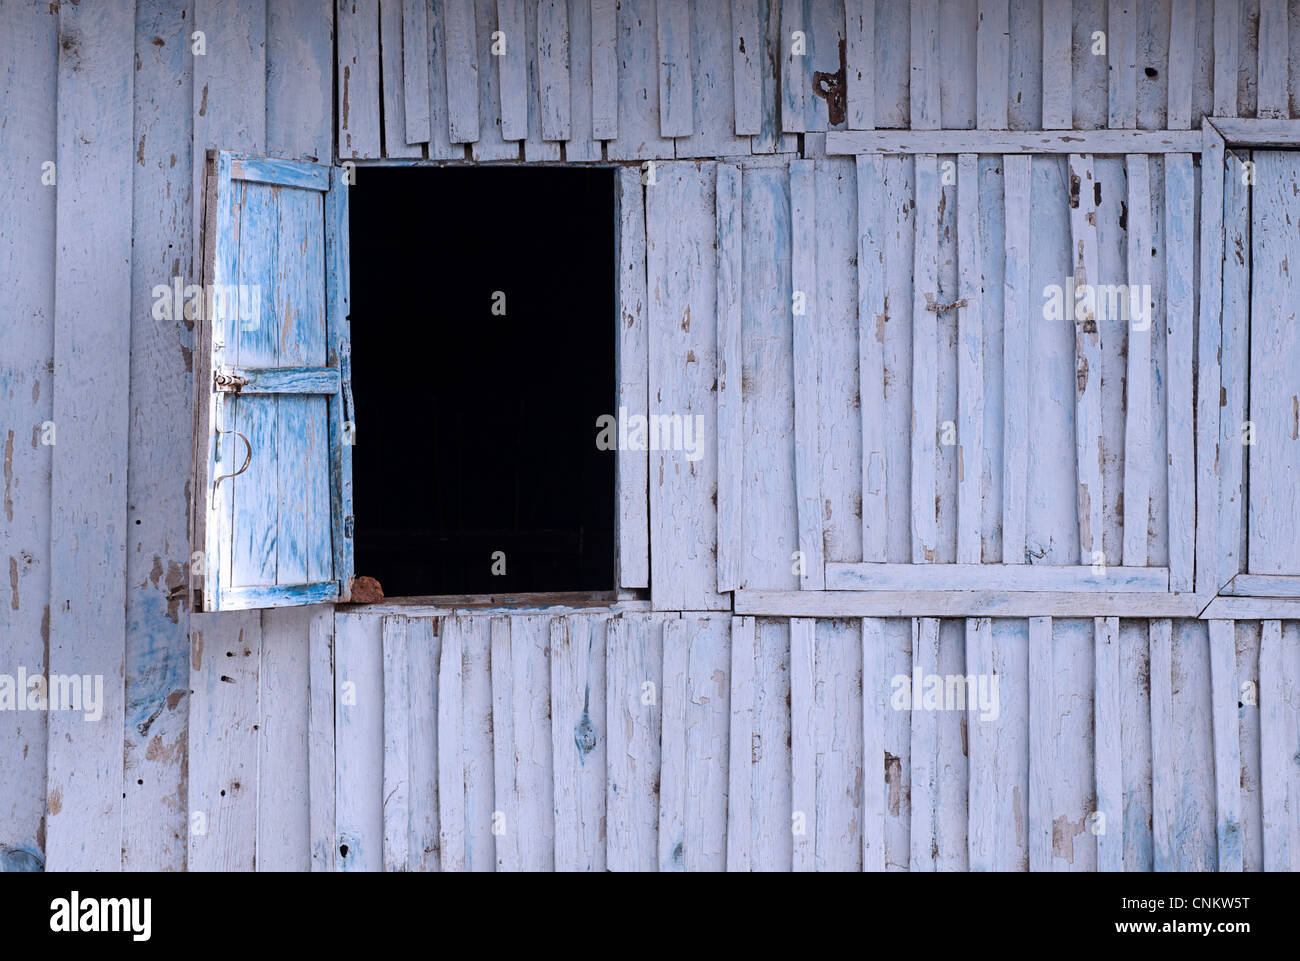 Open Window hatch in a wooden wall. Kalaw, Burma - Stock Image